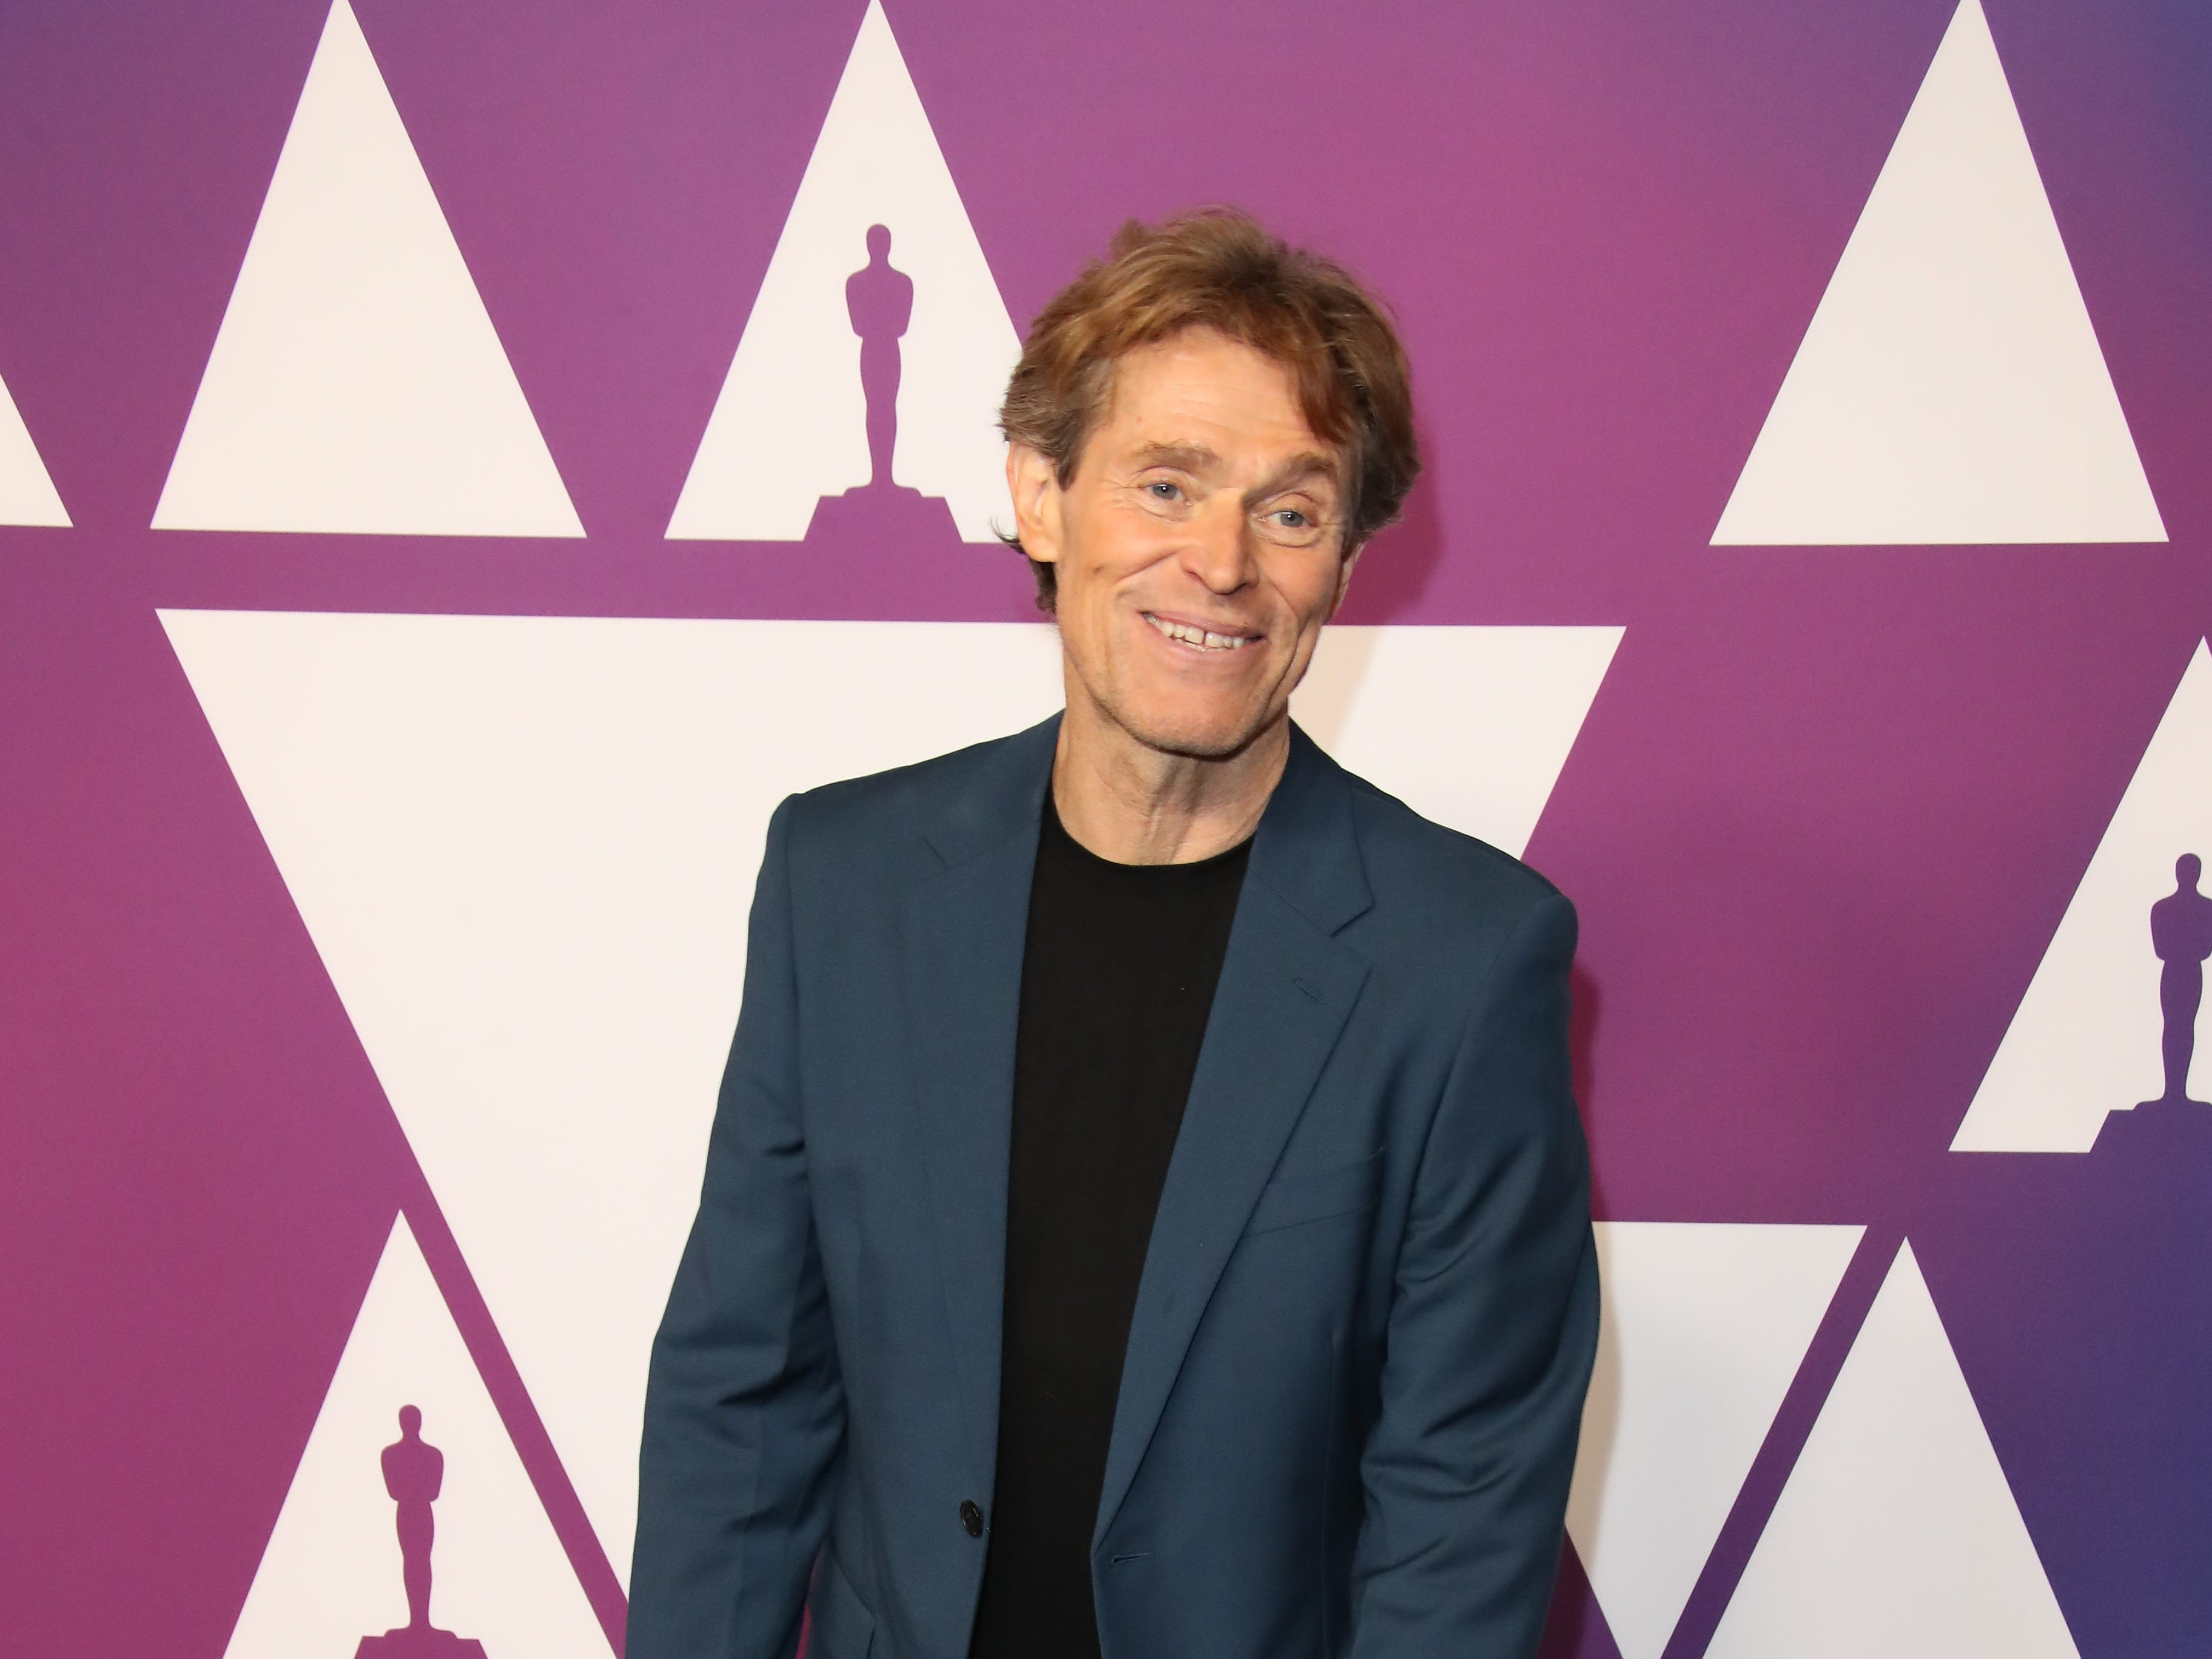 2/4/19 12:06:59 PM -- Beverly Hills, CA, U.S.A  -- Willem Dafoe arrives at the 91st Oscar nominees luncheon at the Beverly Hilton Hotel in Beverly Hills, CA--    Photo by Dan MacMedan, USA TODAY contract photographer ORG XMIT:  DM 137796 OscarNomineesLun 2/4/2019 [Via MerlinFTP Drop]